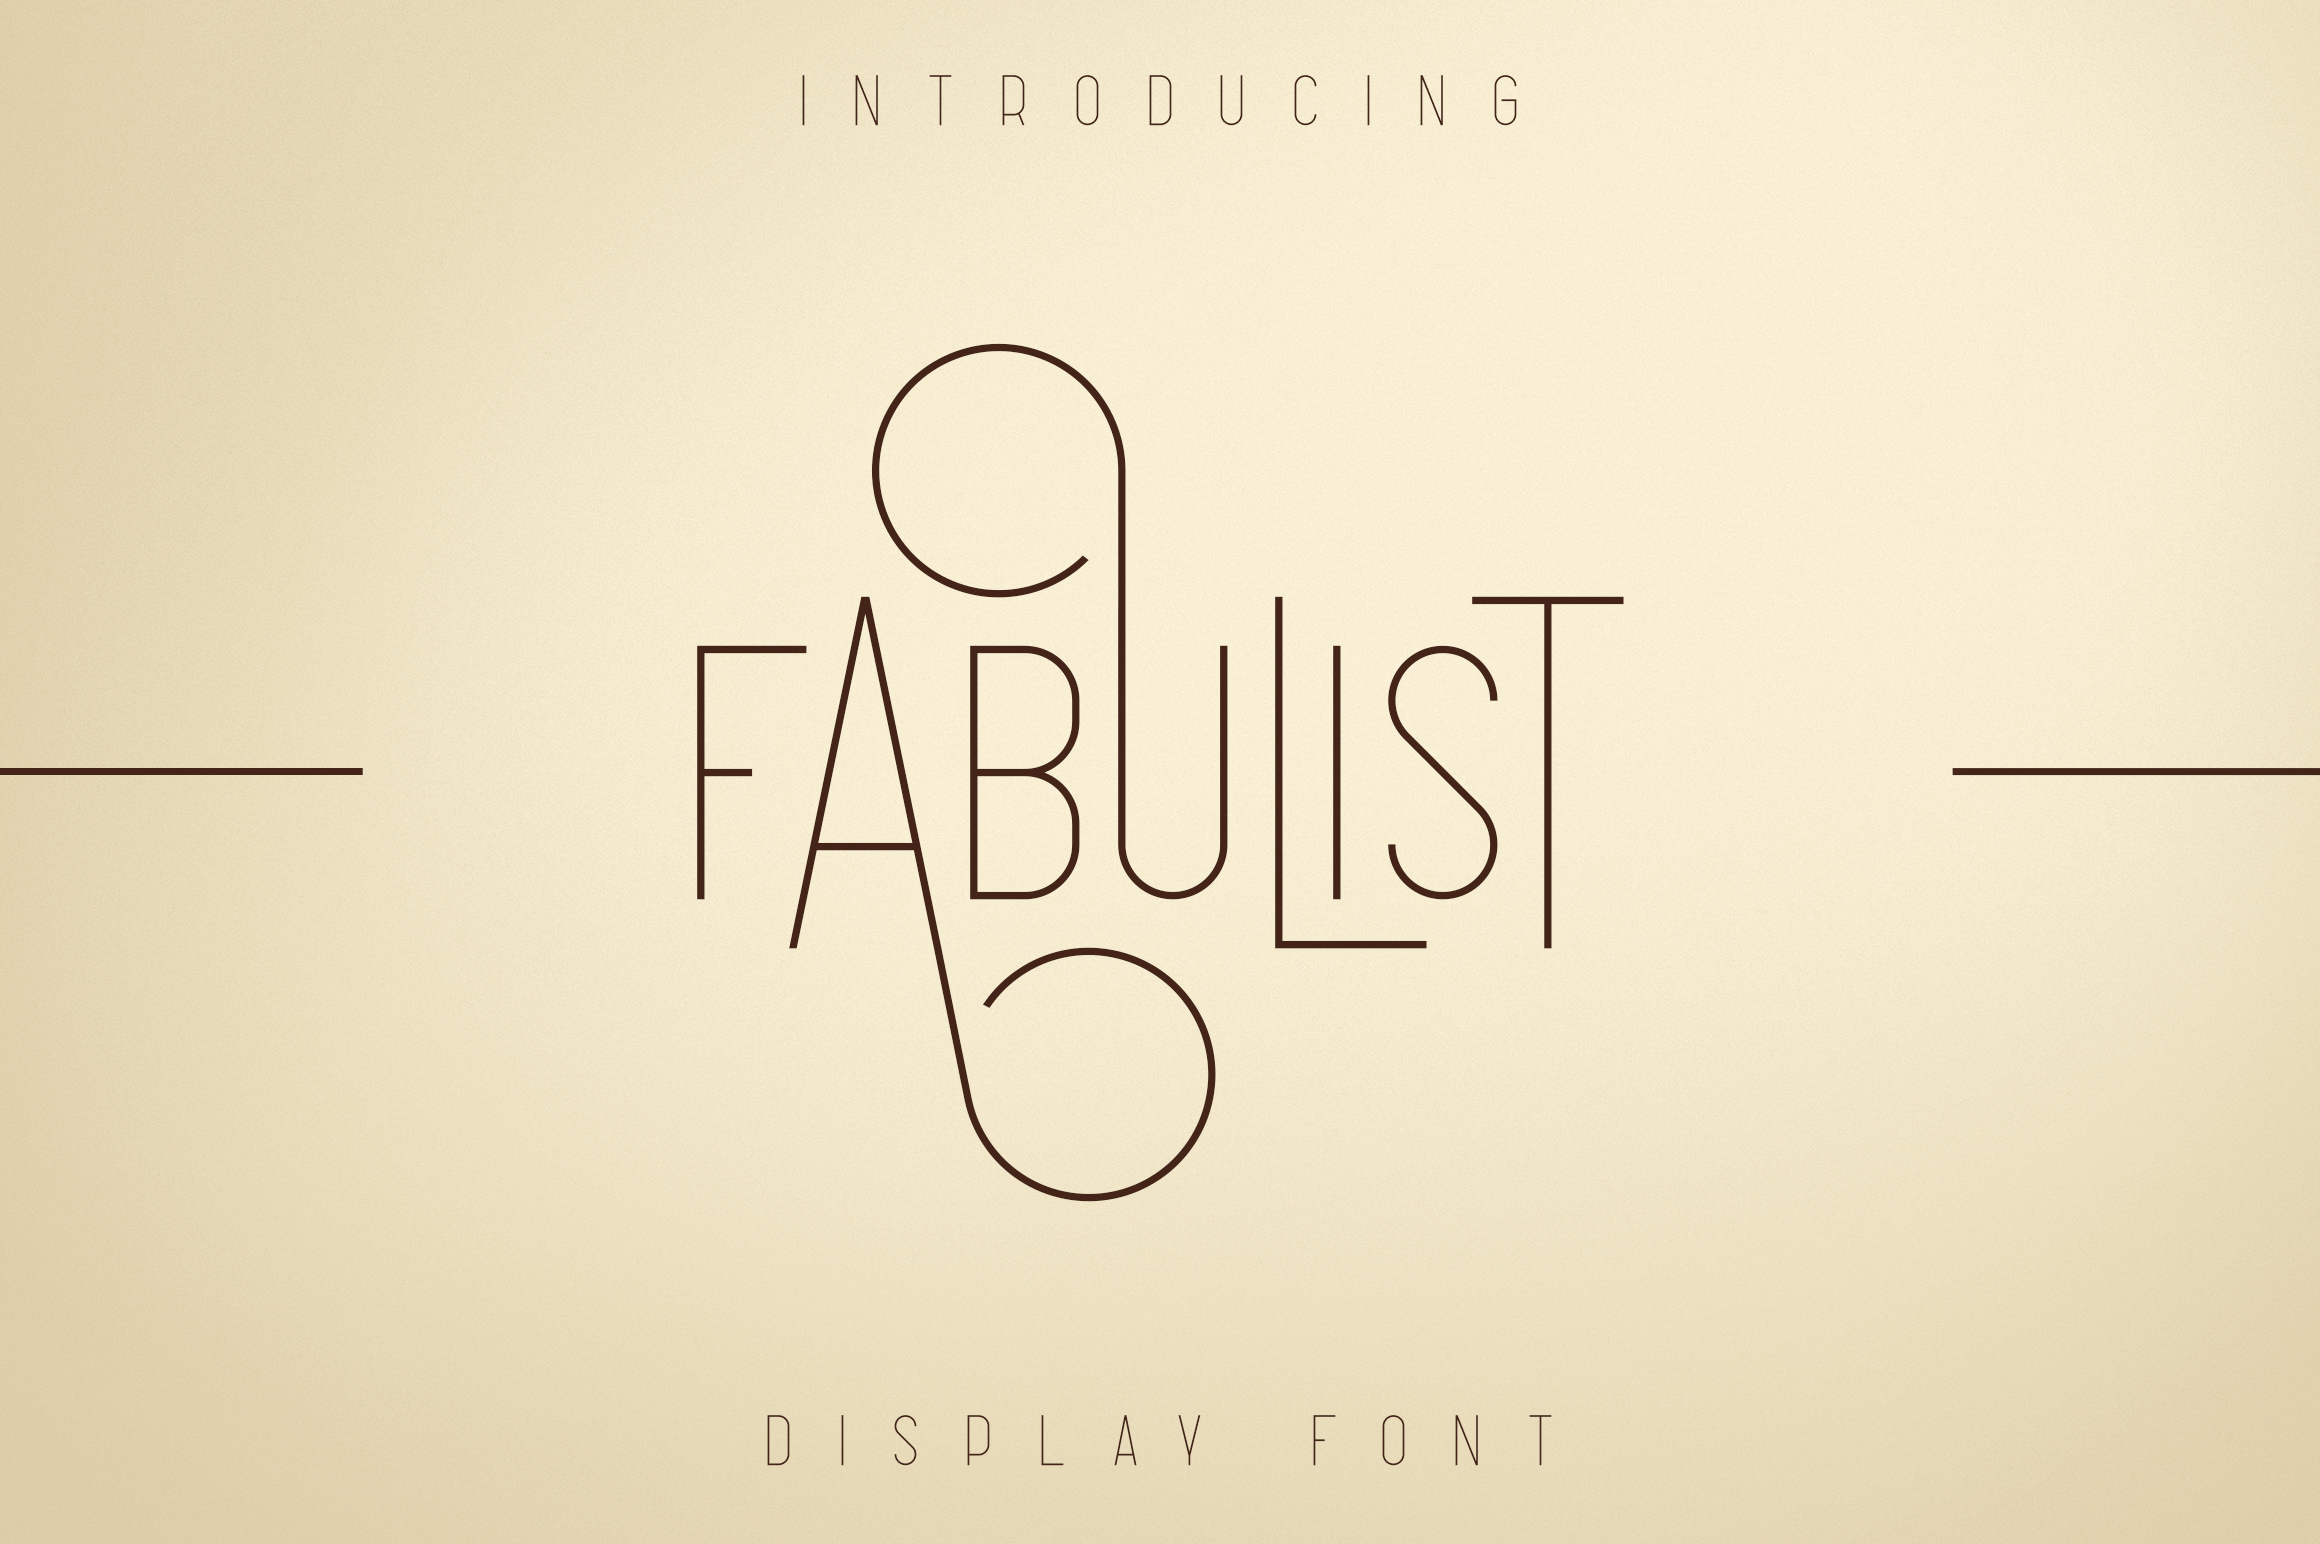 Fabulist - Display font example image 1